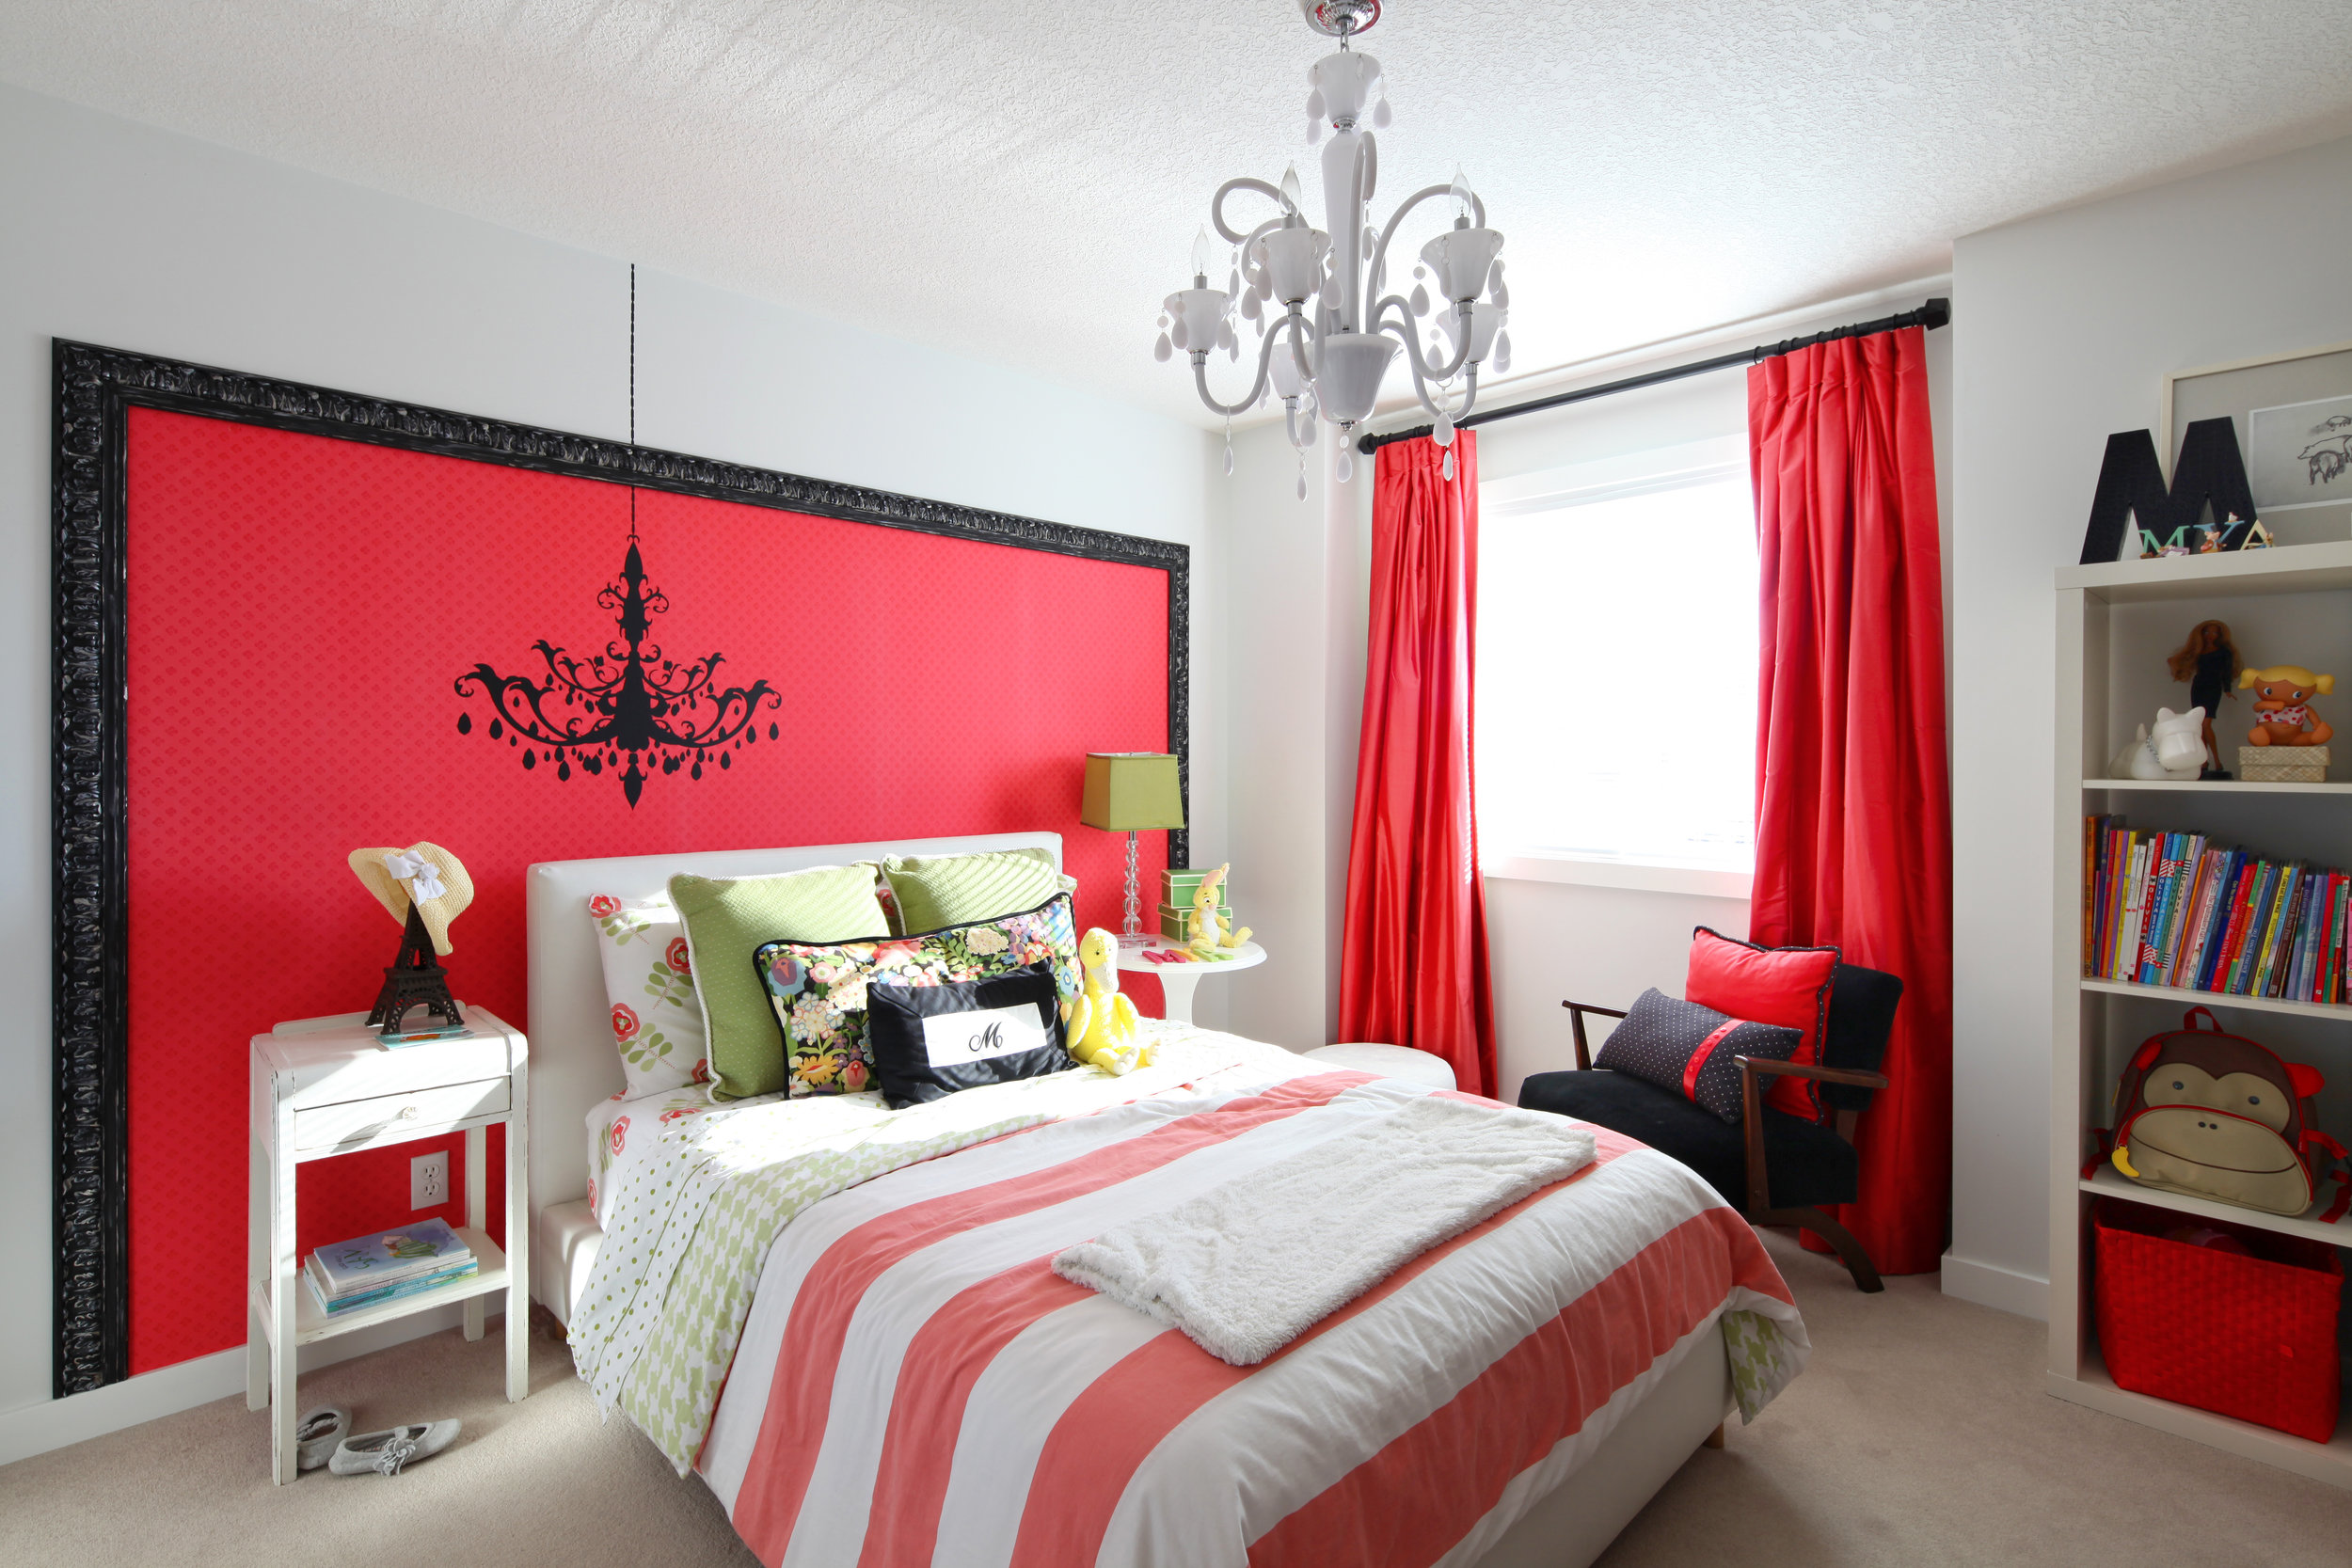 Before and After Tween Girls Bedroom Makeover, Calgary Interior Designer, Nyla Free Designs, Lori Andrews Photography